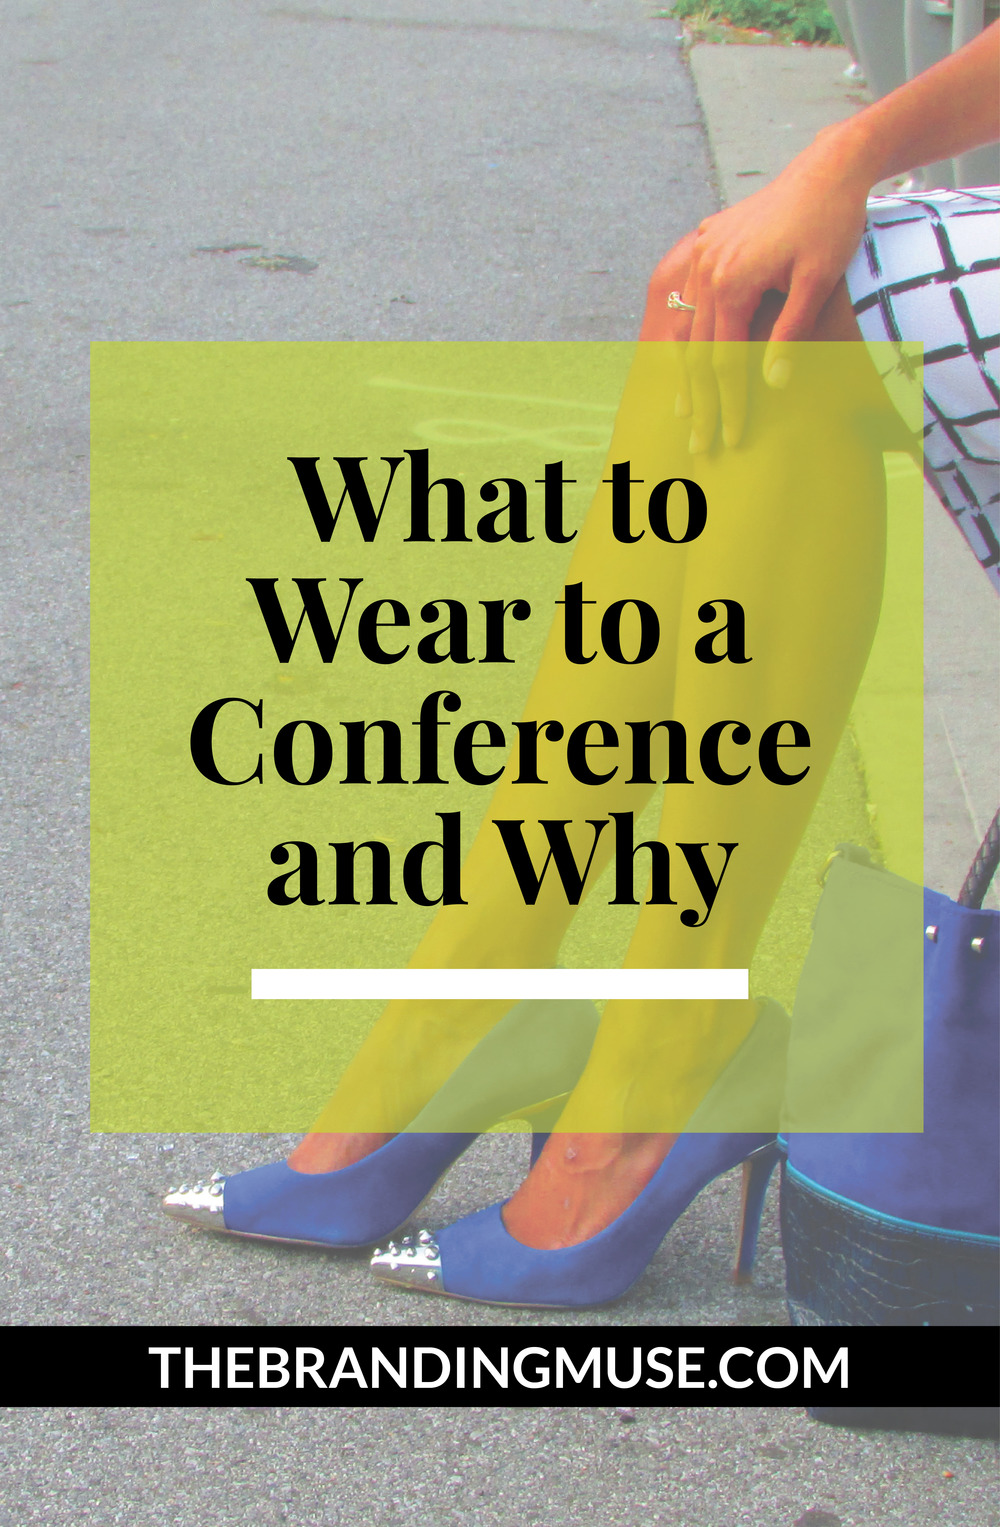 What-to-wear-to-a-conference.jpg